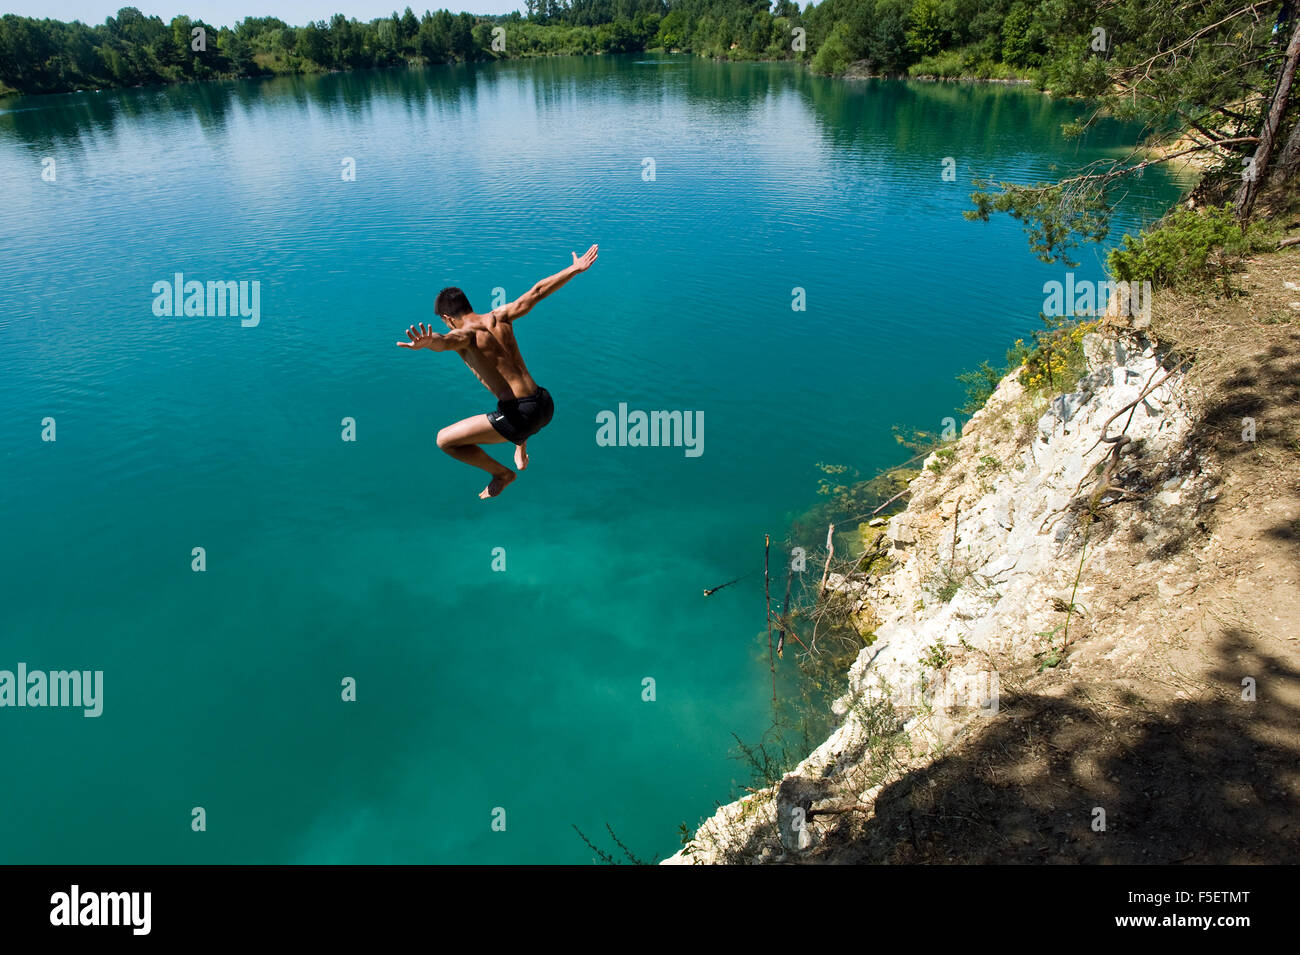 Young man jumps of the cliff to the clean, turquoise water in Sulejow. Poland. - Stock Image